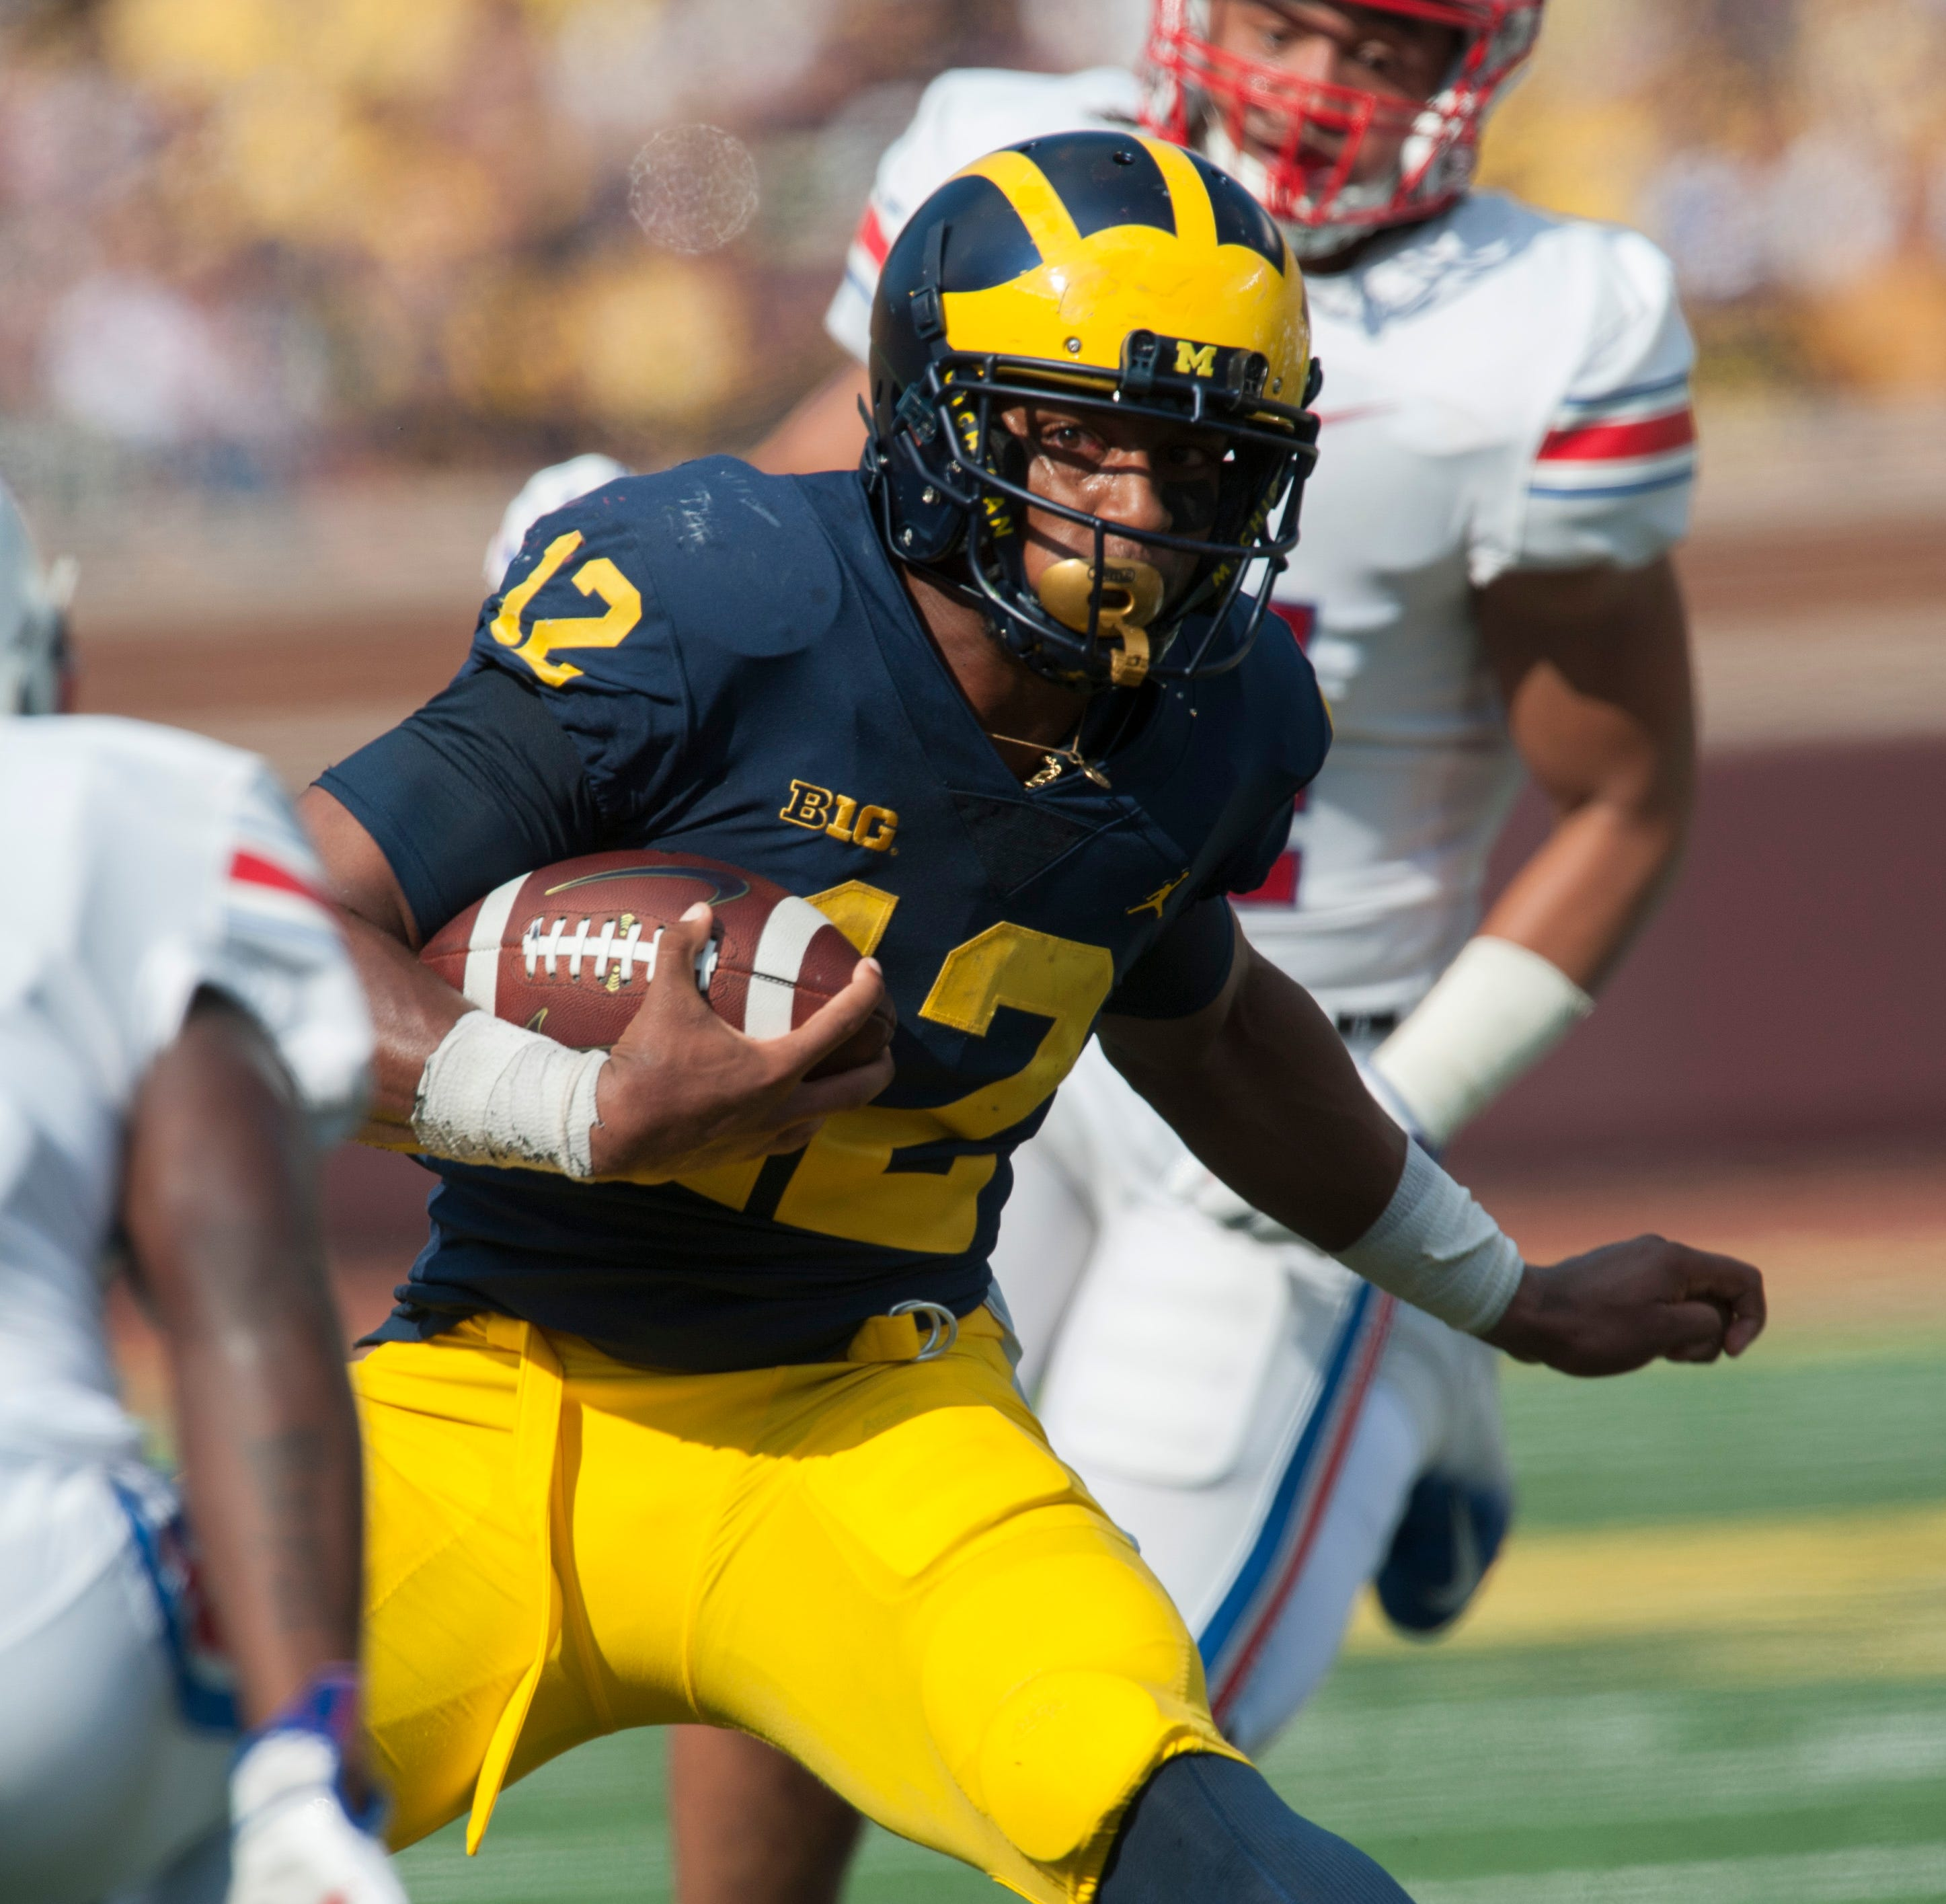 Suspended Michigan RB Chris Evans finds himself on outside looking in